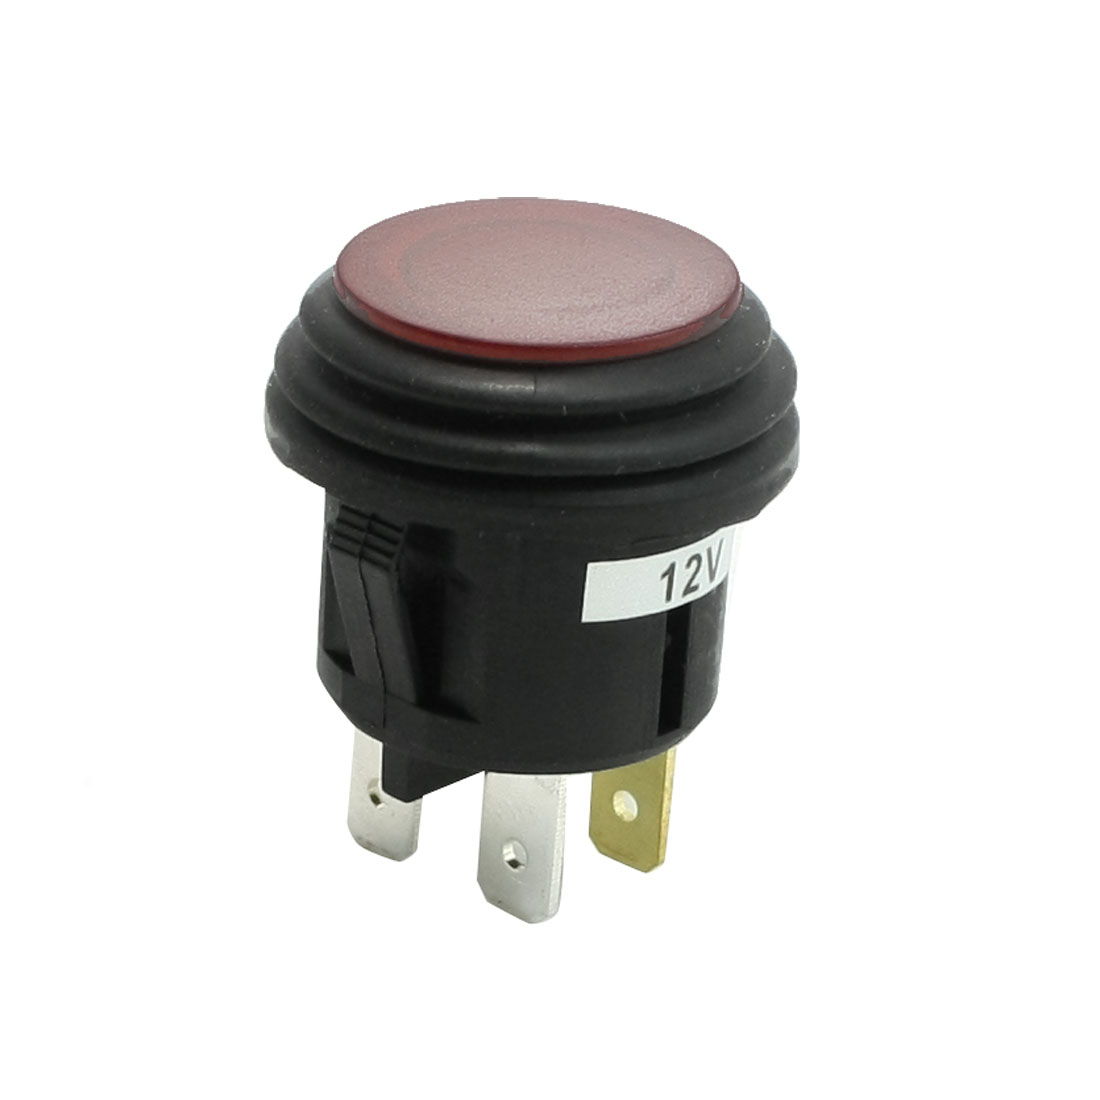 DC 12V 20A Red Light Indicating Lamp SPST Flat Top Car Push Button Switch